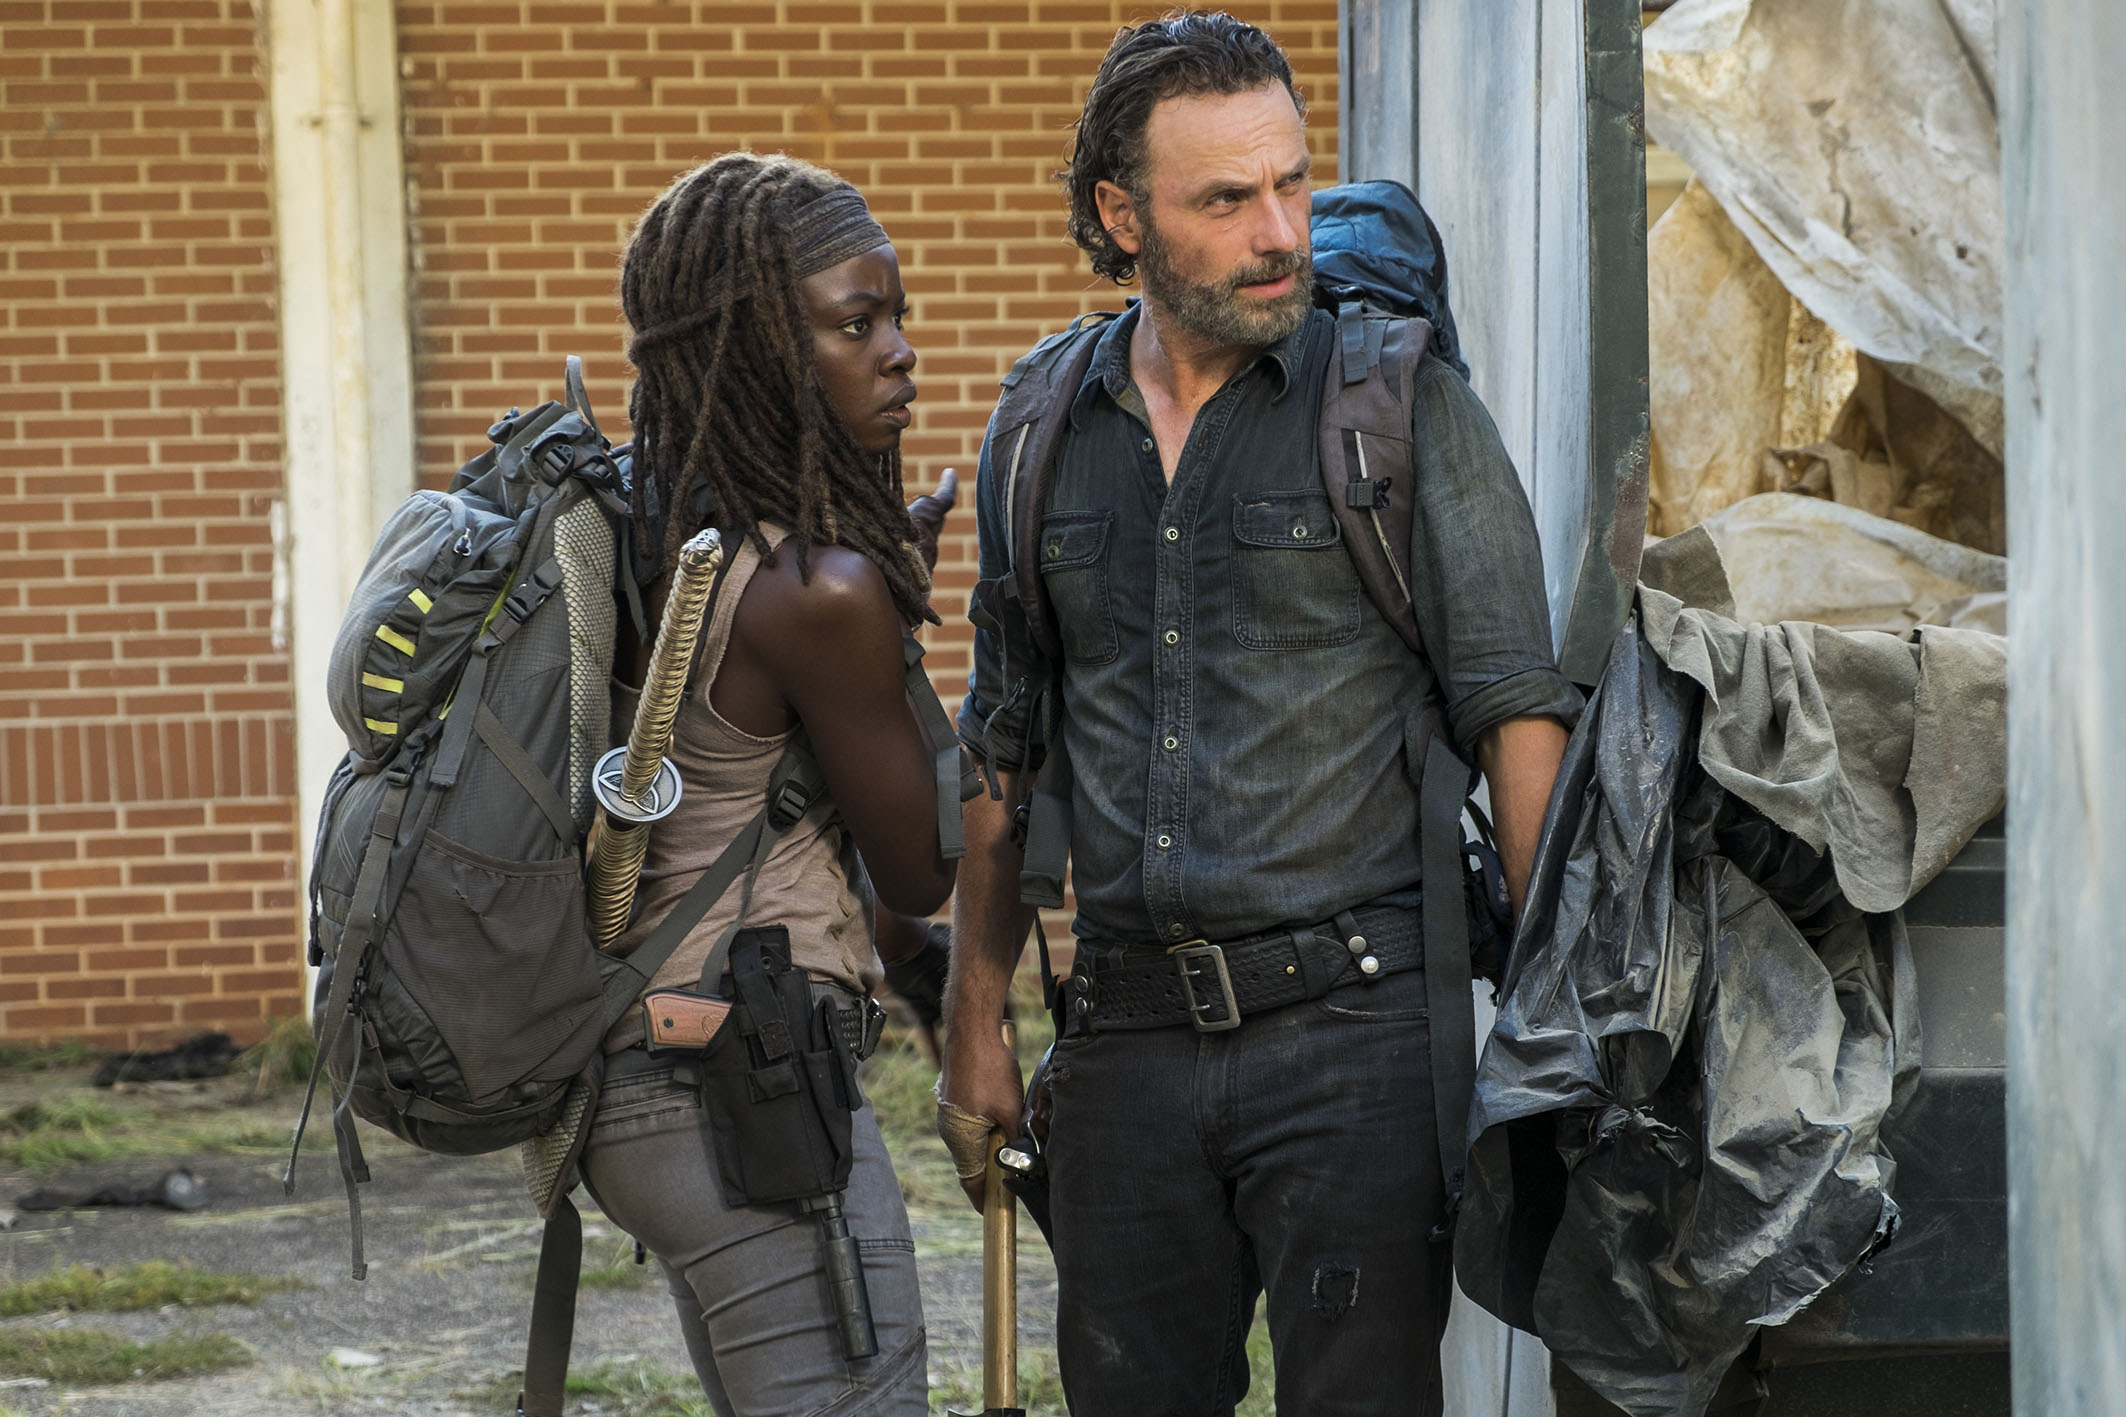 Andrew Lincoln as Rick Grimes, Danai Gurira as Michonne - The Walking Dead _ Season 7, Episode 12 - Photo Credit: Gene Page/AMC